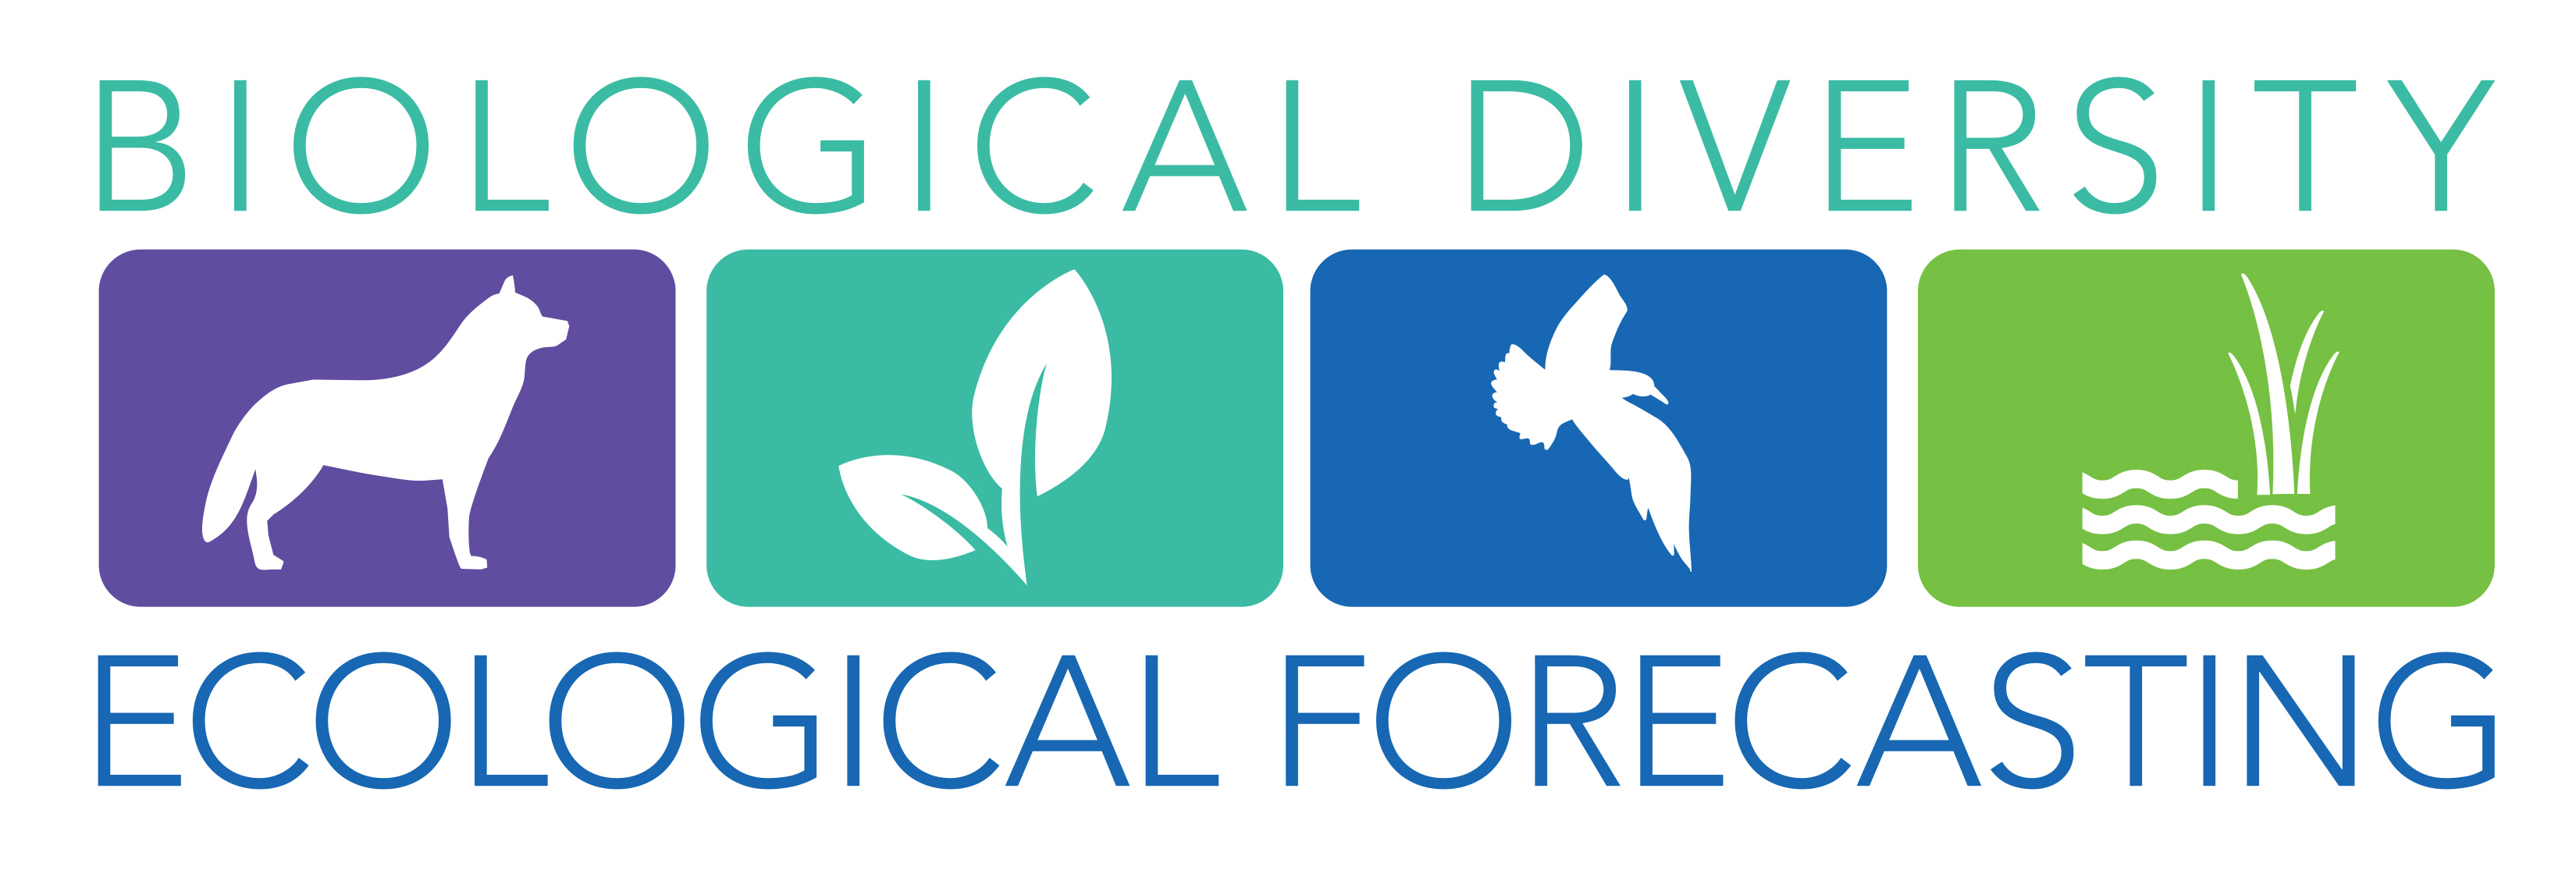 Biodiversity image with various colored icons.